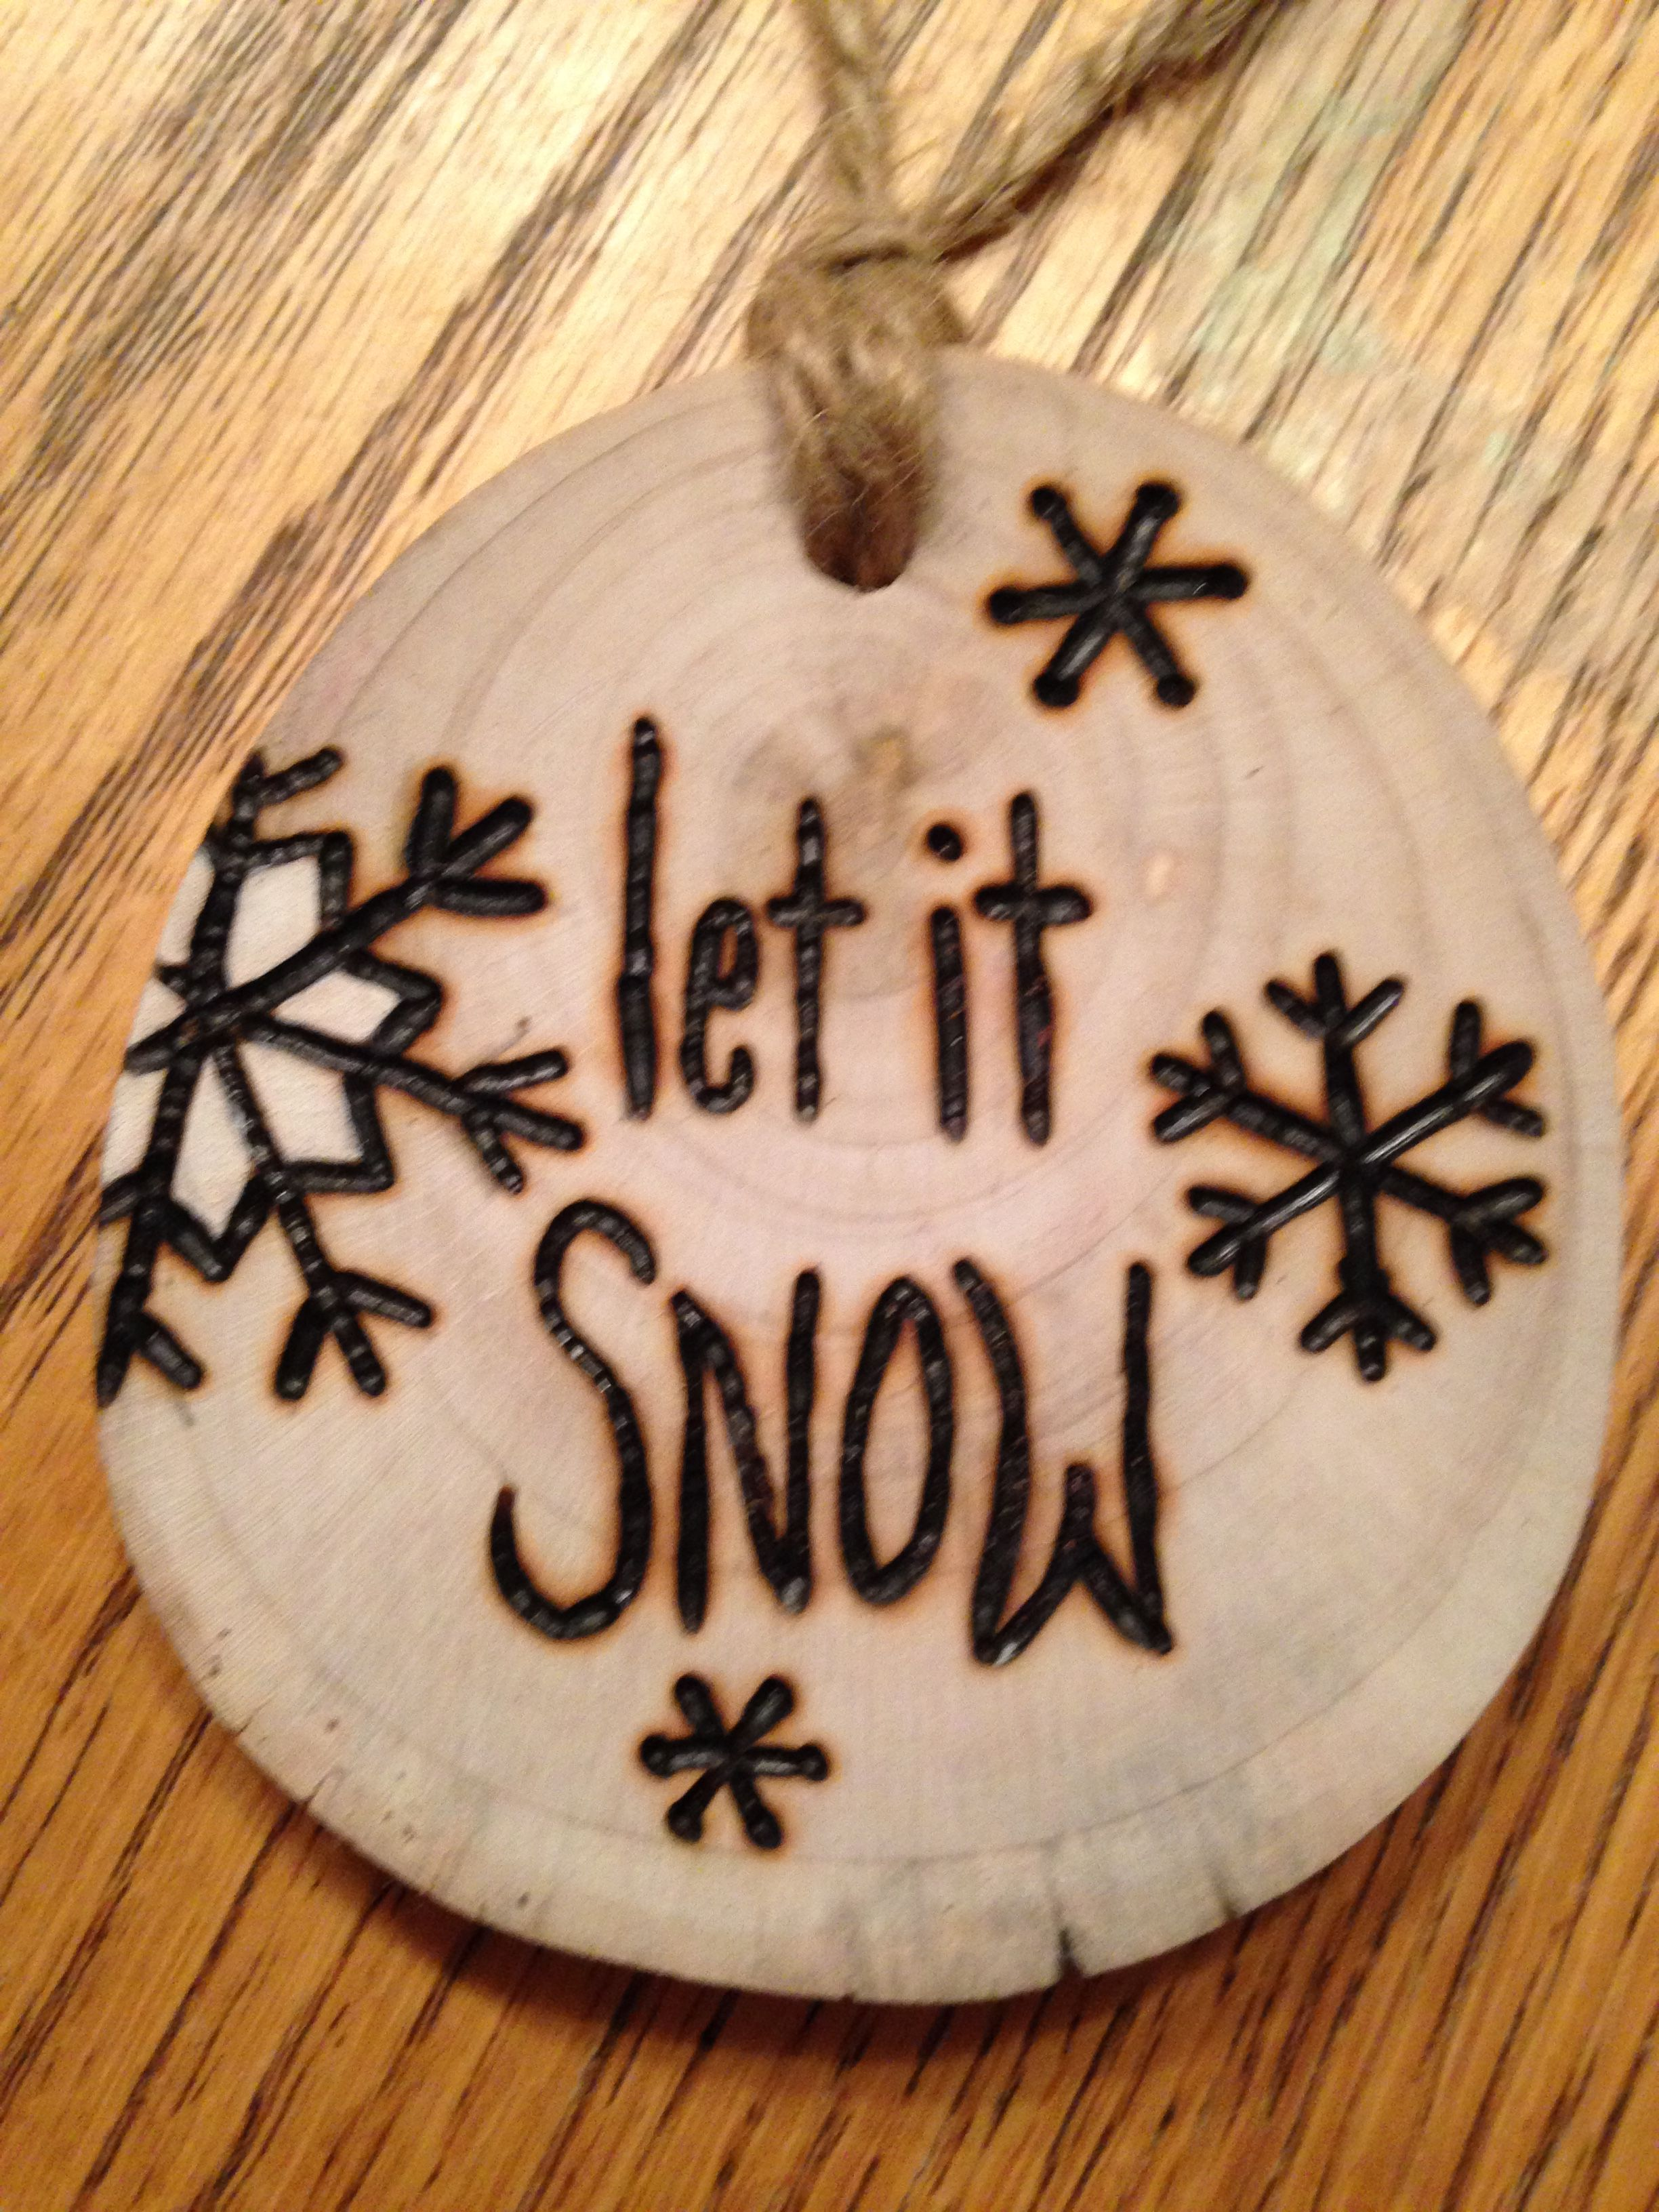 Rustic Let It Snow Wood Burned Christmas Ornament Natural Wood Wood Christmas Ornaments Christmas Ornament Crafts Xmas Crafts